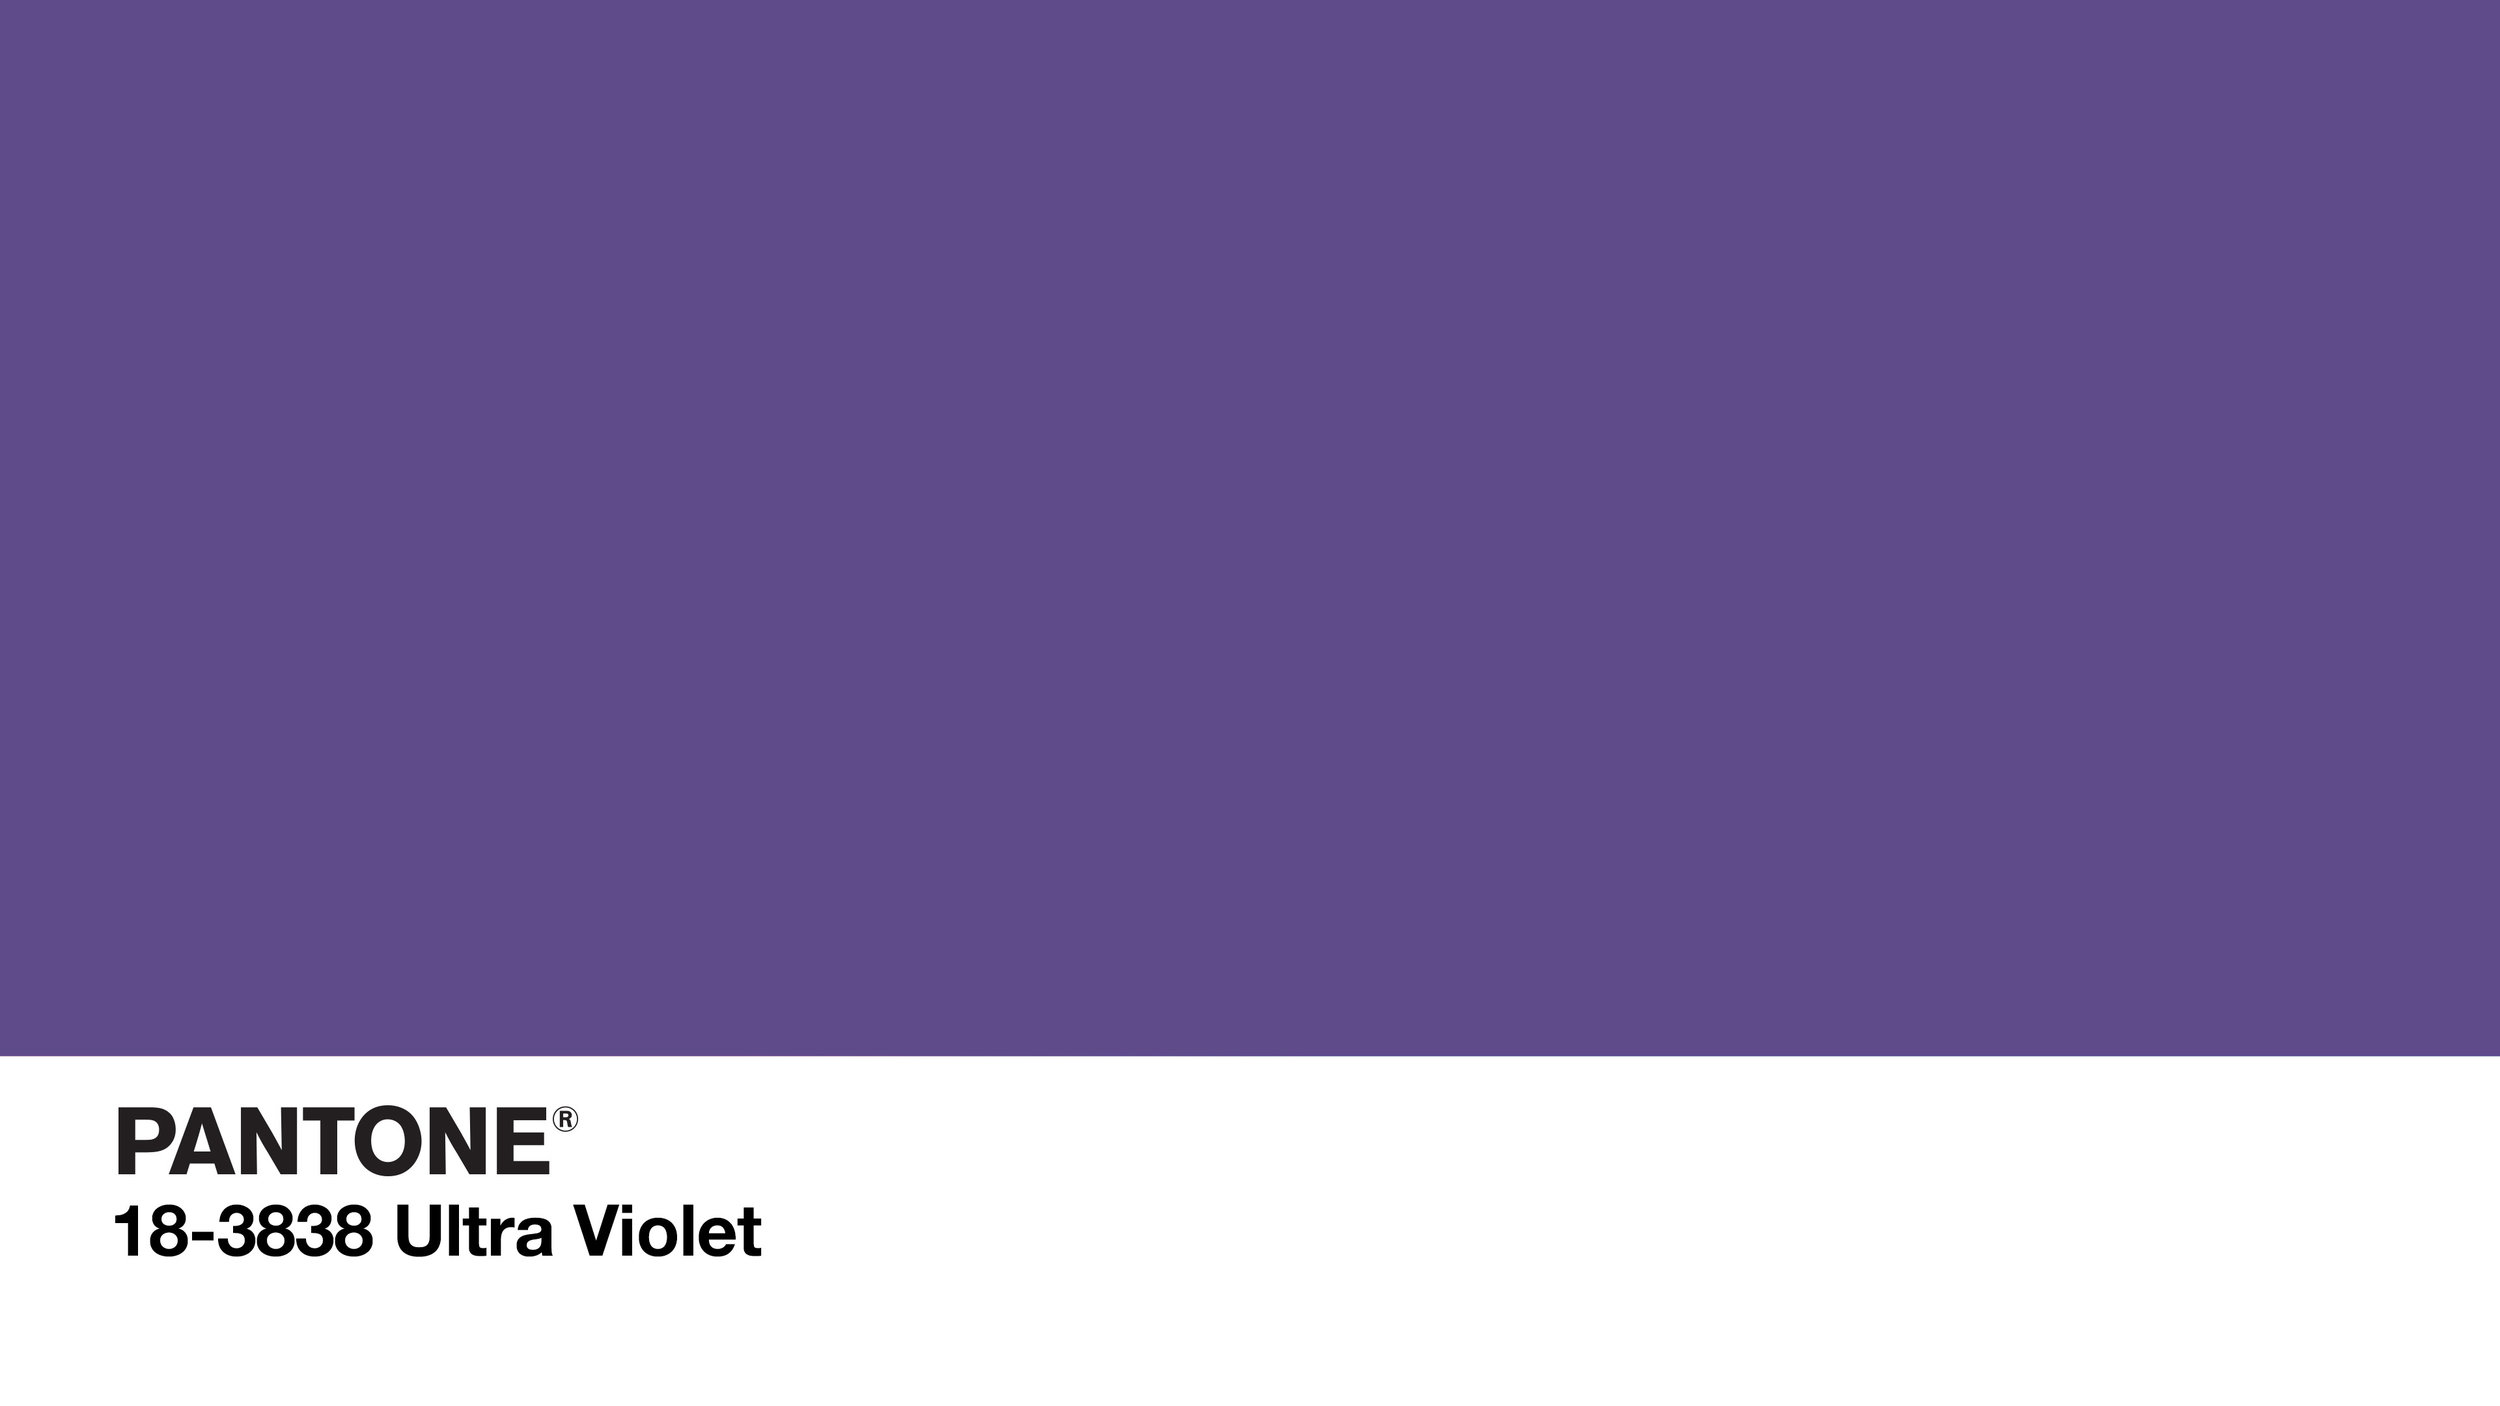 PANTONE-Color-of-the-Year-2018-ultra-violet-18-3838-v1-3840x2160.jpg